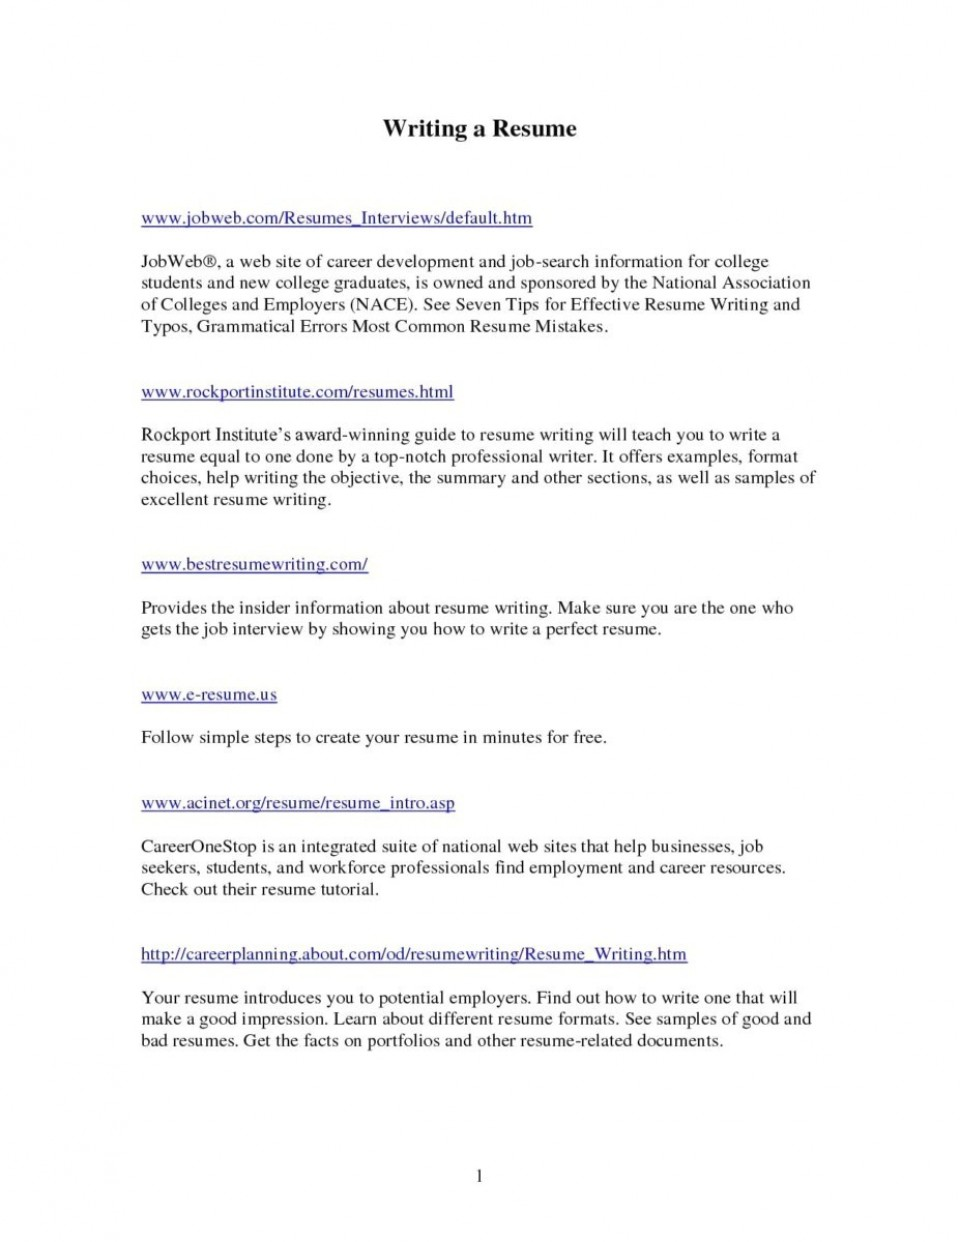 021 Resume Writing Service Reviews Format Best Writers Inspirational Help Professional Of Free Services How To Write Good Apa Research Unique A Paper Psychology Outline Do You 960